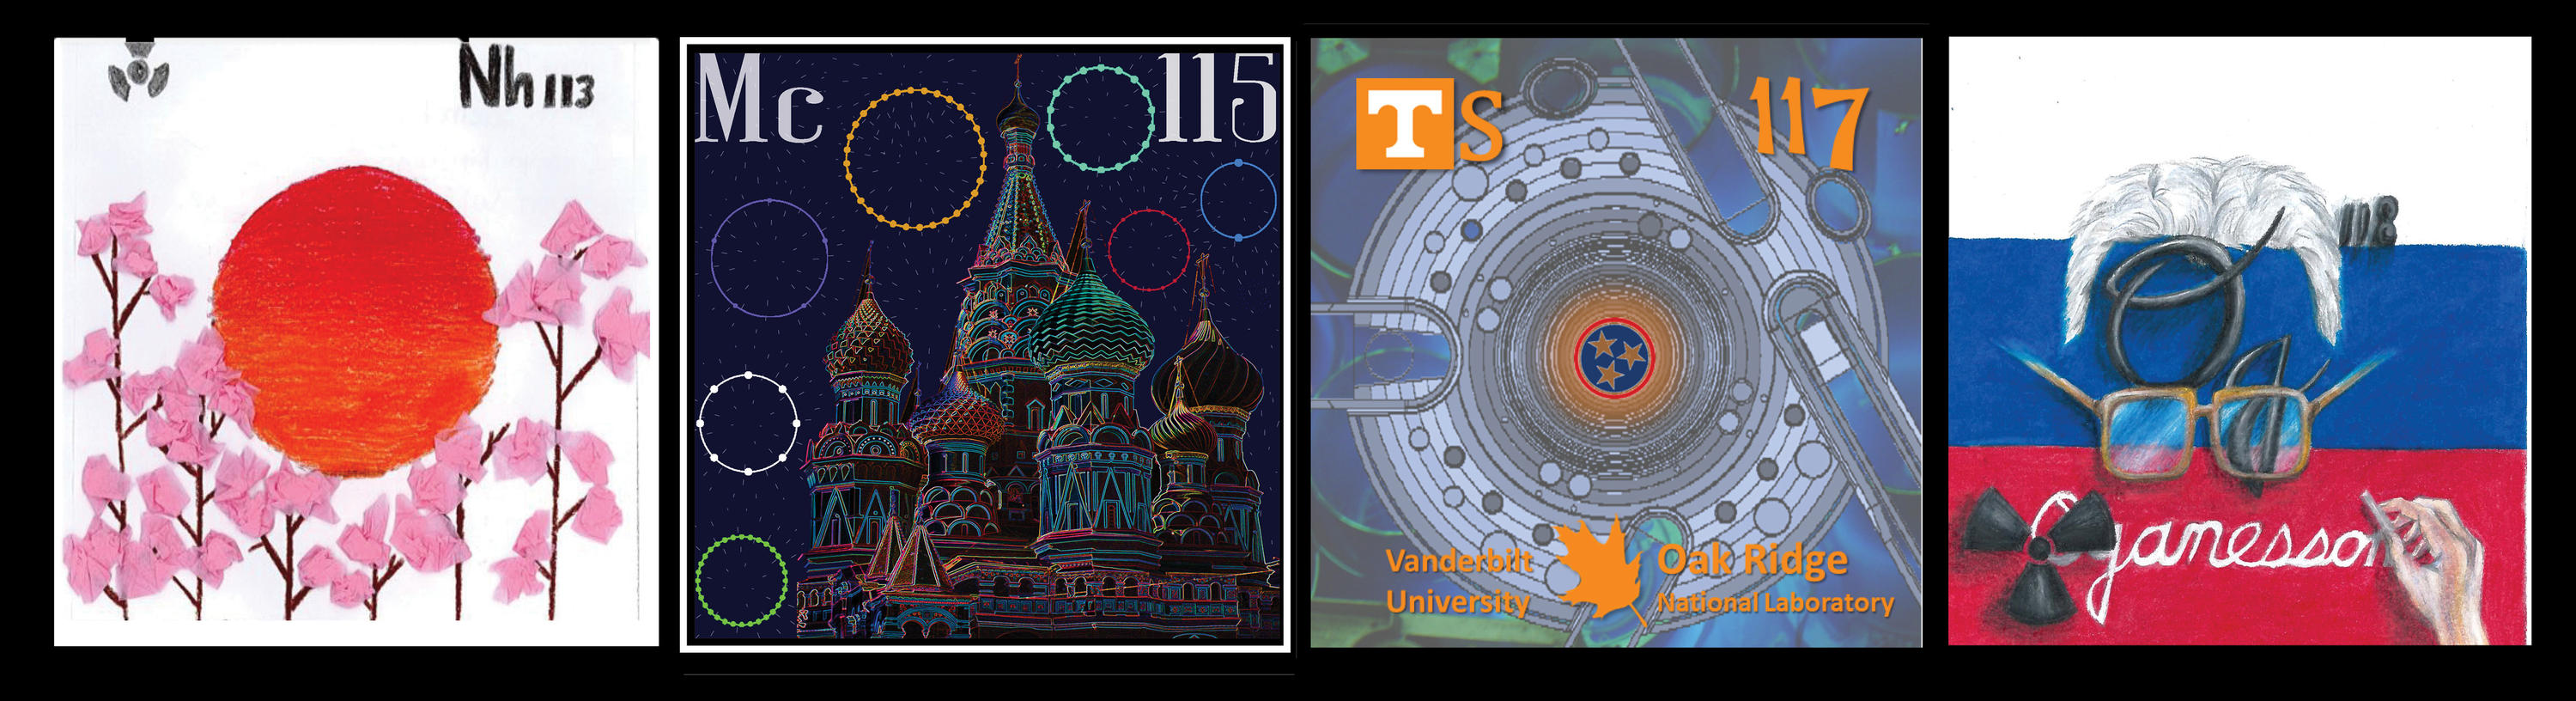 Period Table New Element contest winning tiles for Nihonium, Muscovium, Tennessine, and Oganesson.